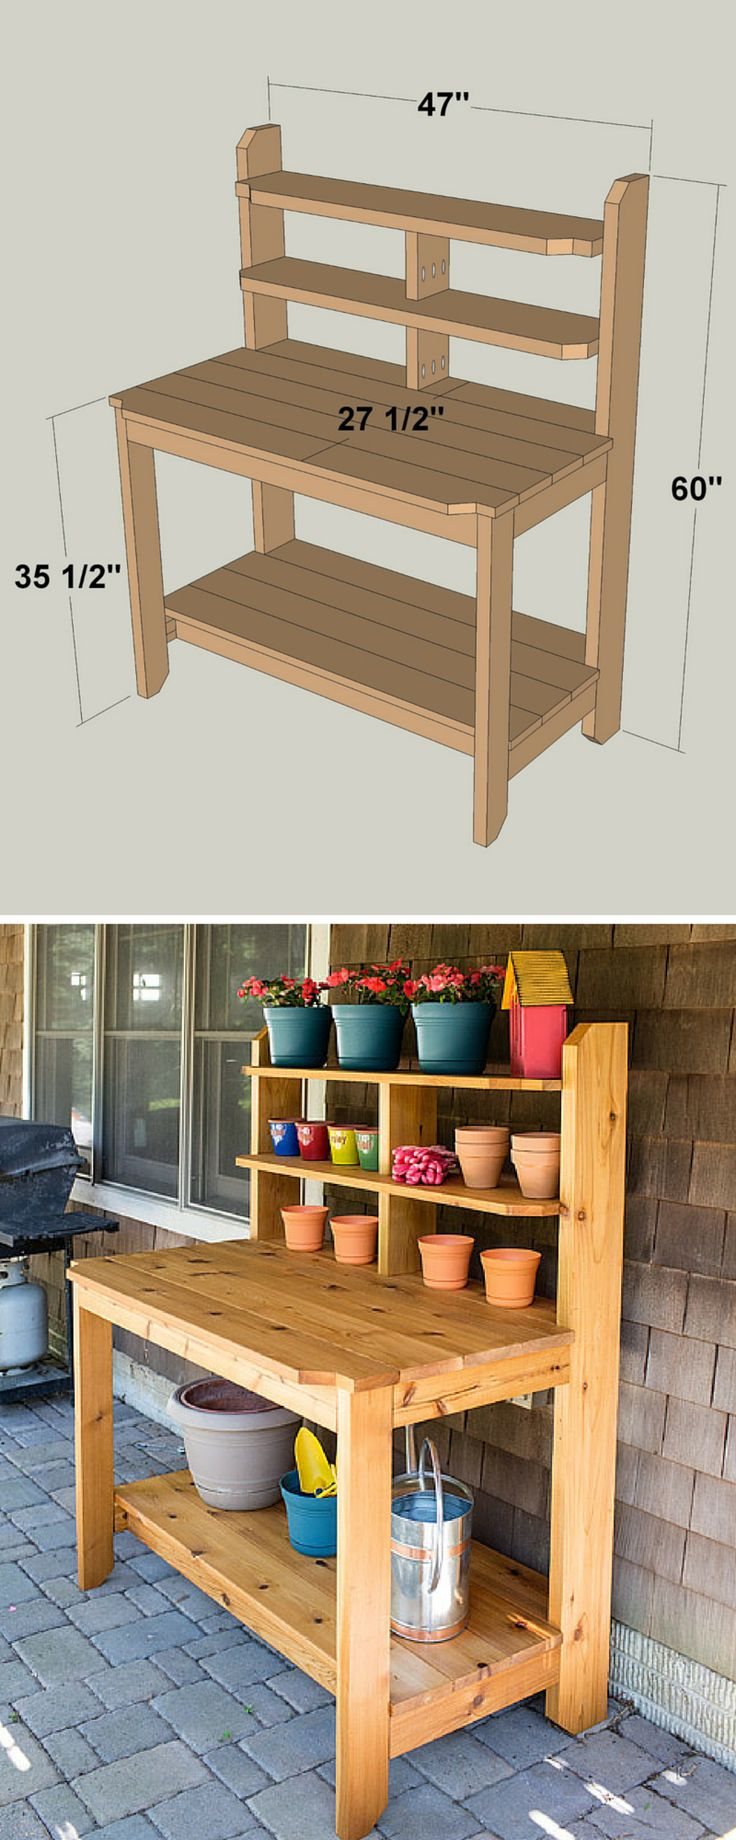 Create a great place for potting plants and gardening chores by building this…